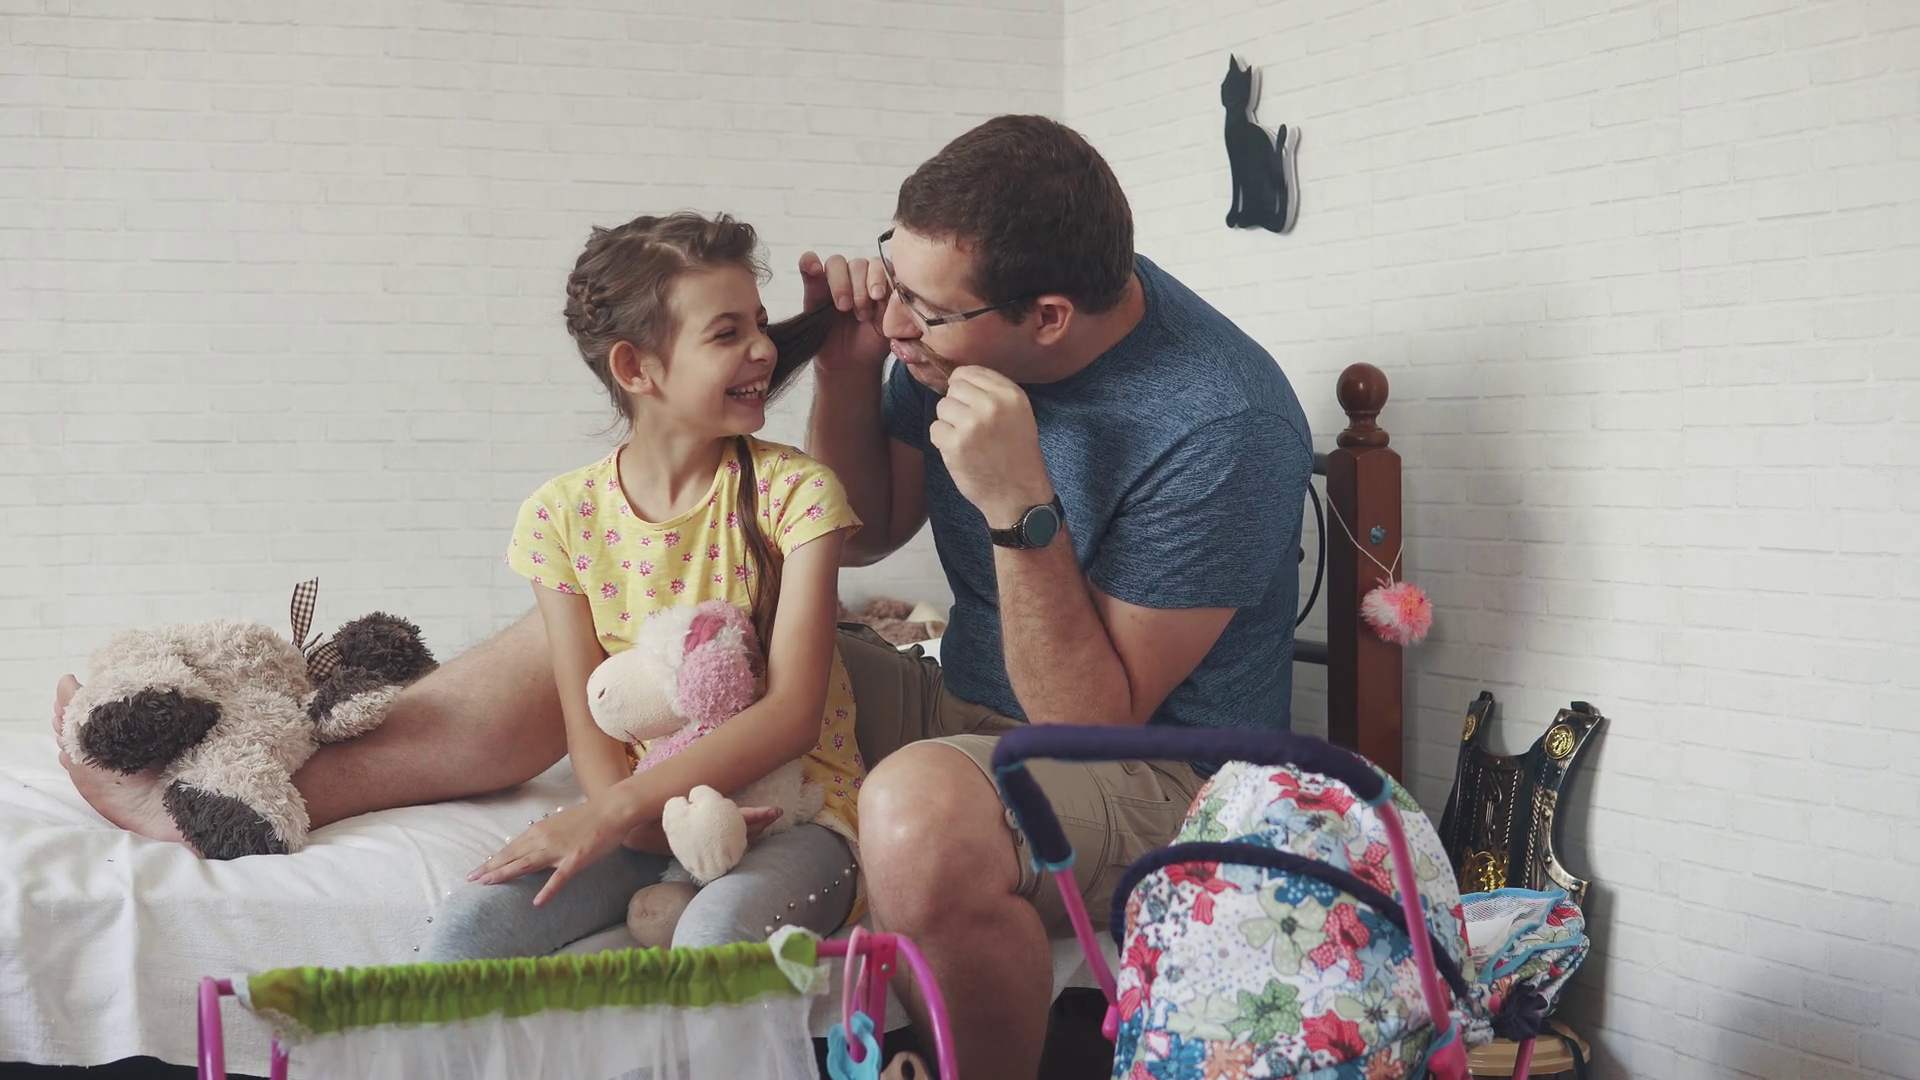 the young father spends time with his little daughter. Dad plaits pigtails to her daughter, plays with her and fools around. friendship between father and daughter. Stock Video Footage - Storyblocks